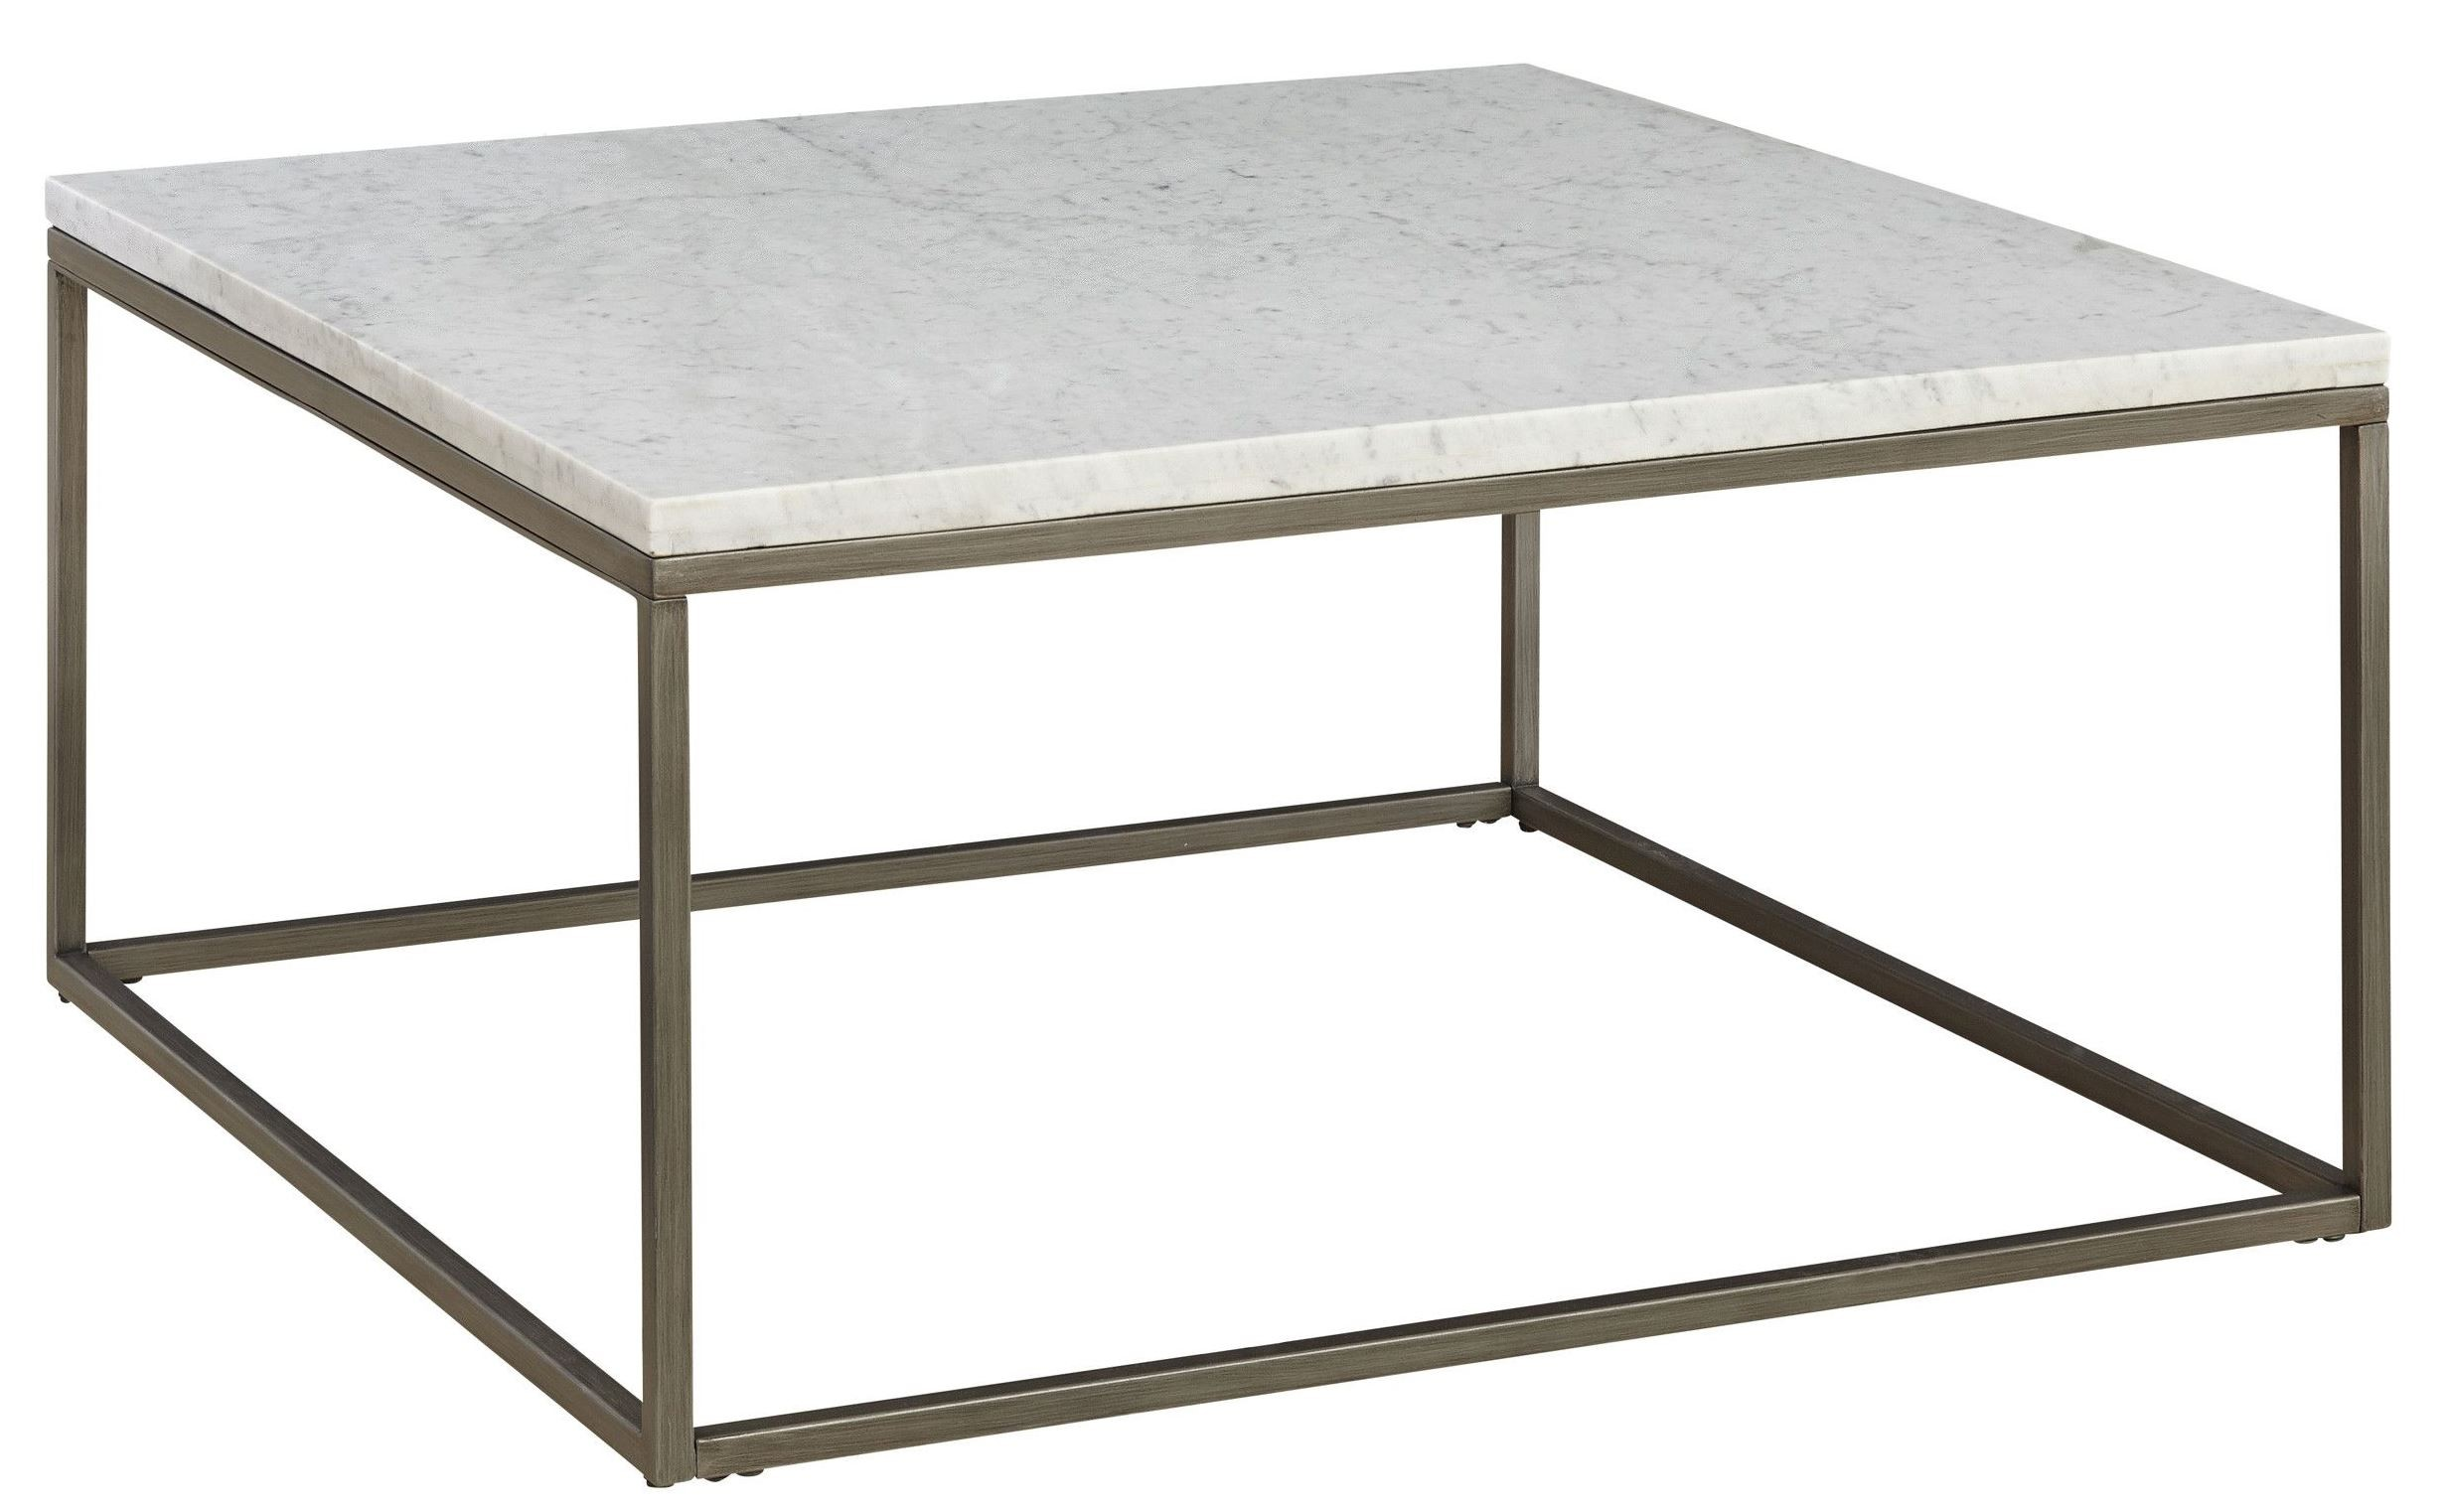 Alana acacia marble top square coffee table from casana coleman furniture Coffee tables with marble tops